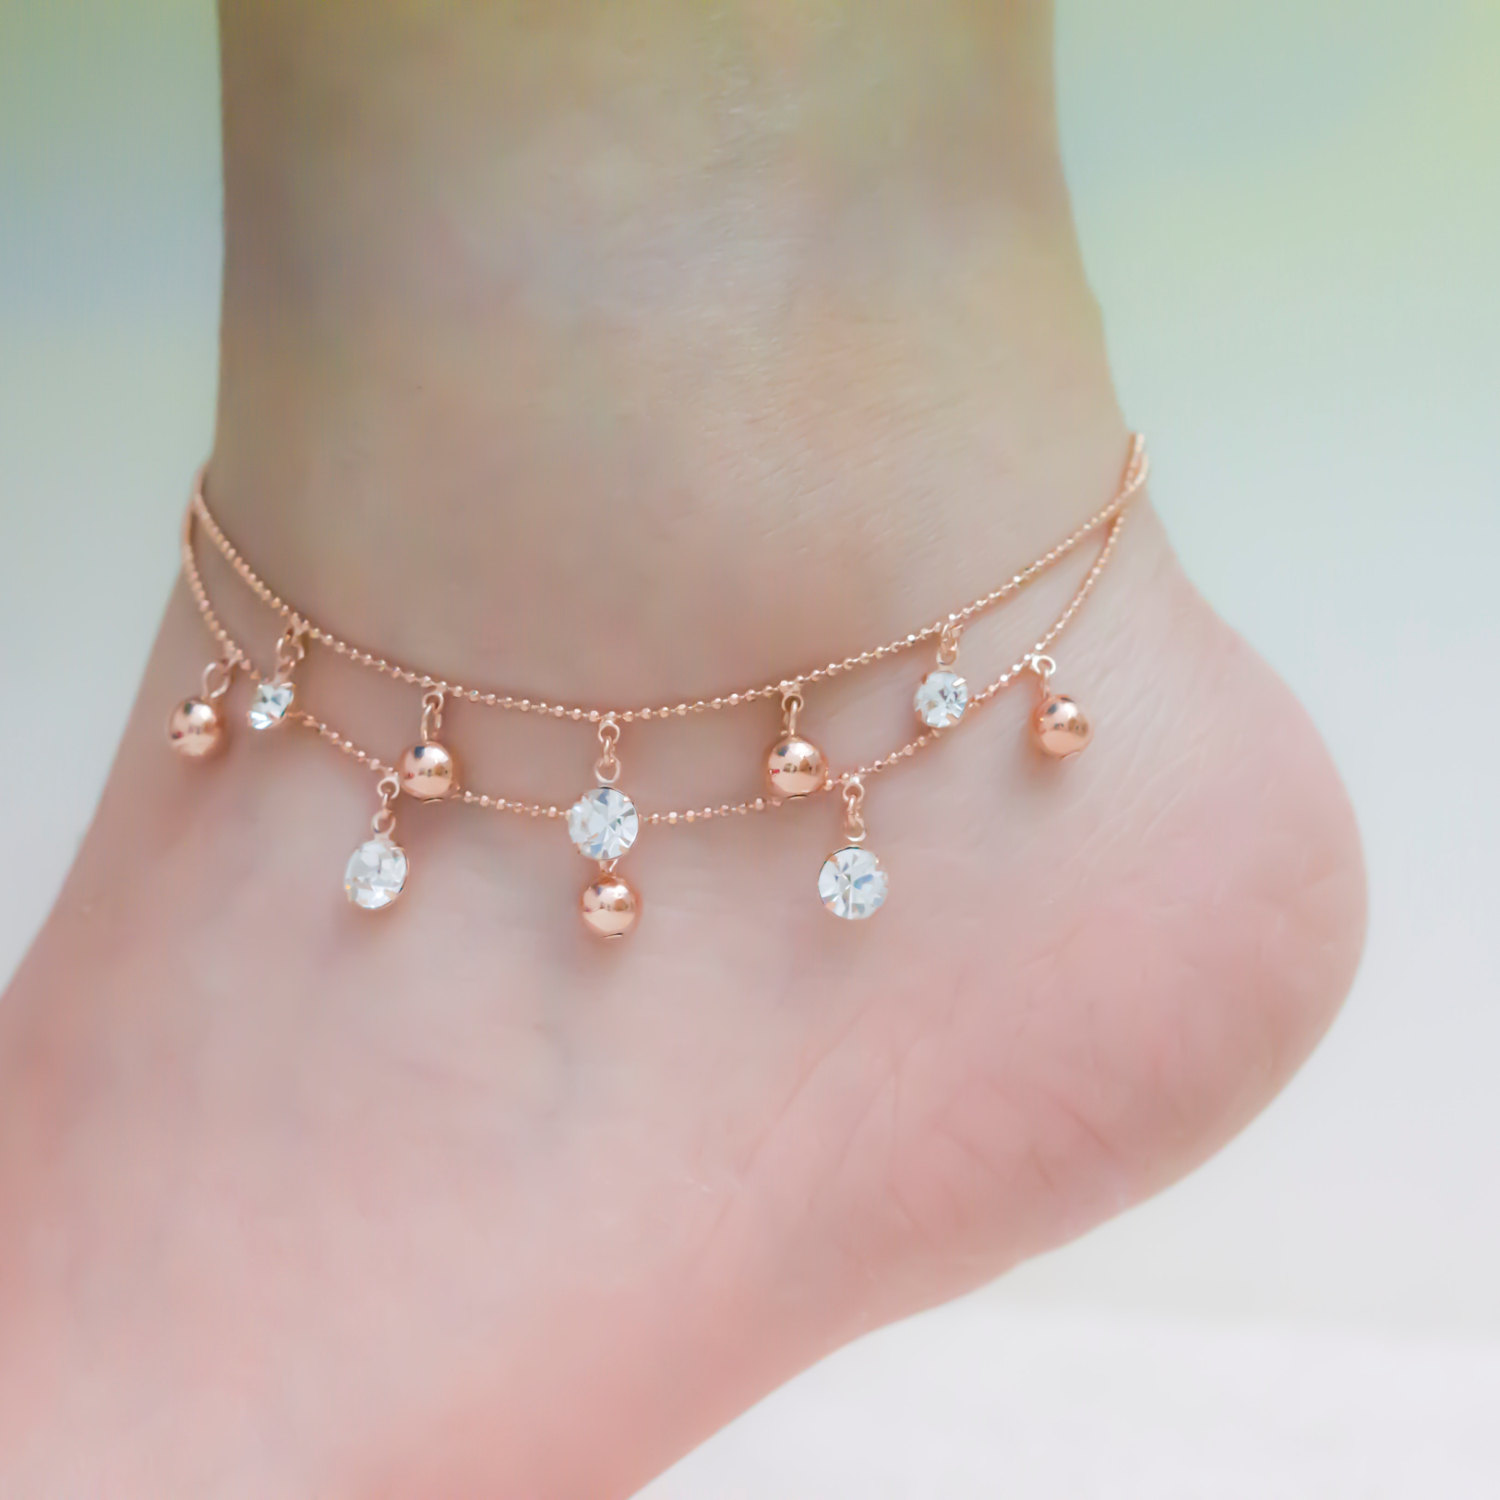 girls detail gold fashion jewelry body stainless ankle bracelet product anklets foot anklet rose arrival new